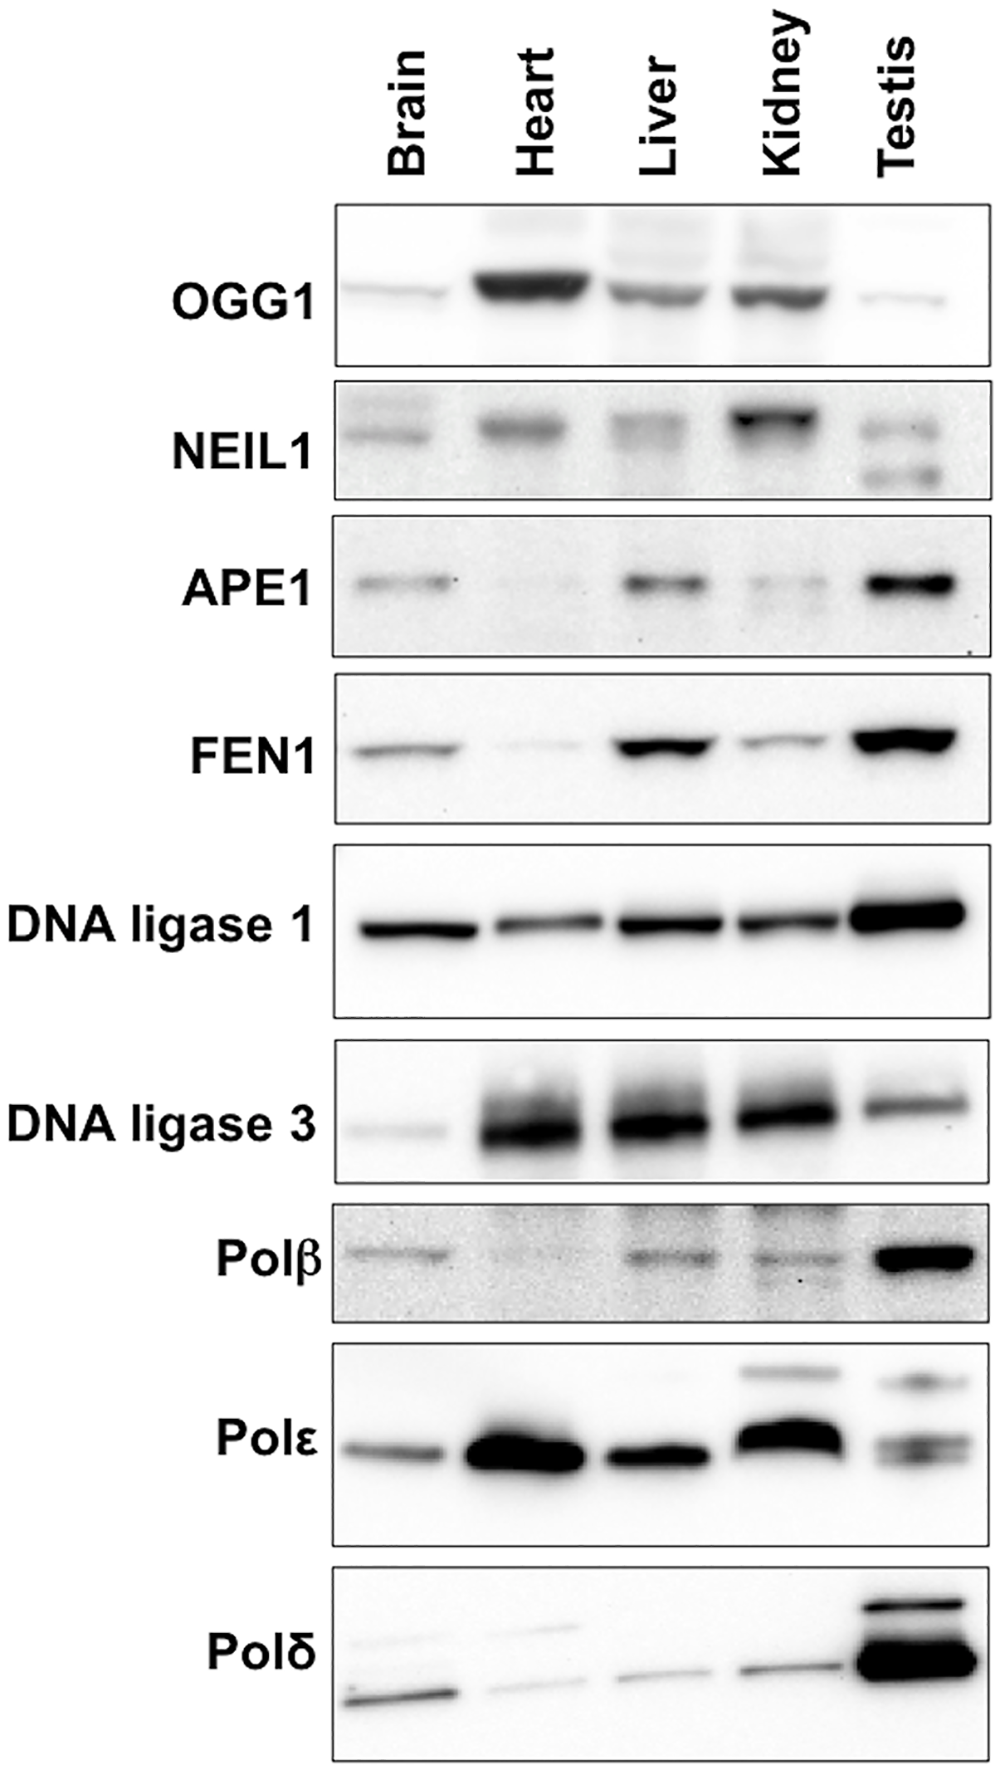 Expression of various BER proteins in different mouse organs.